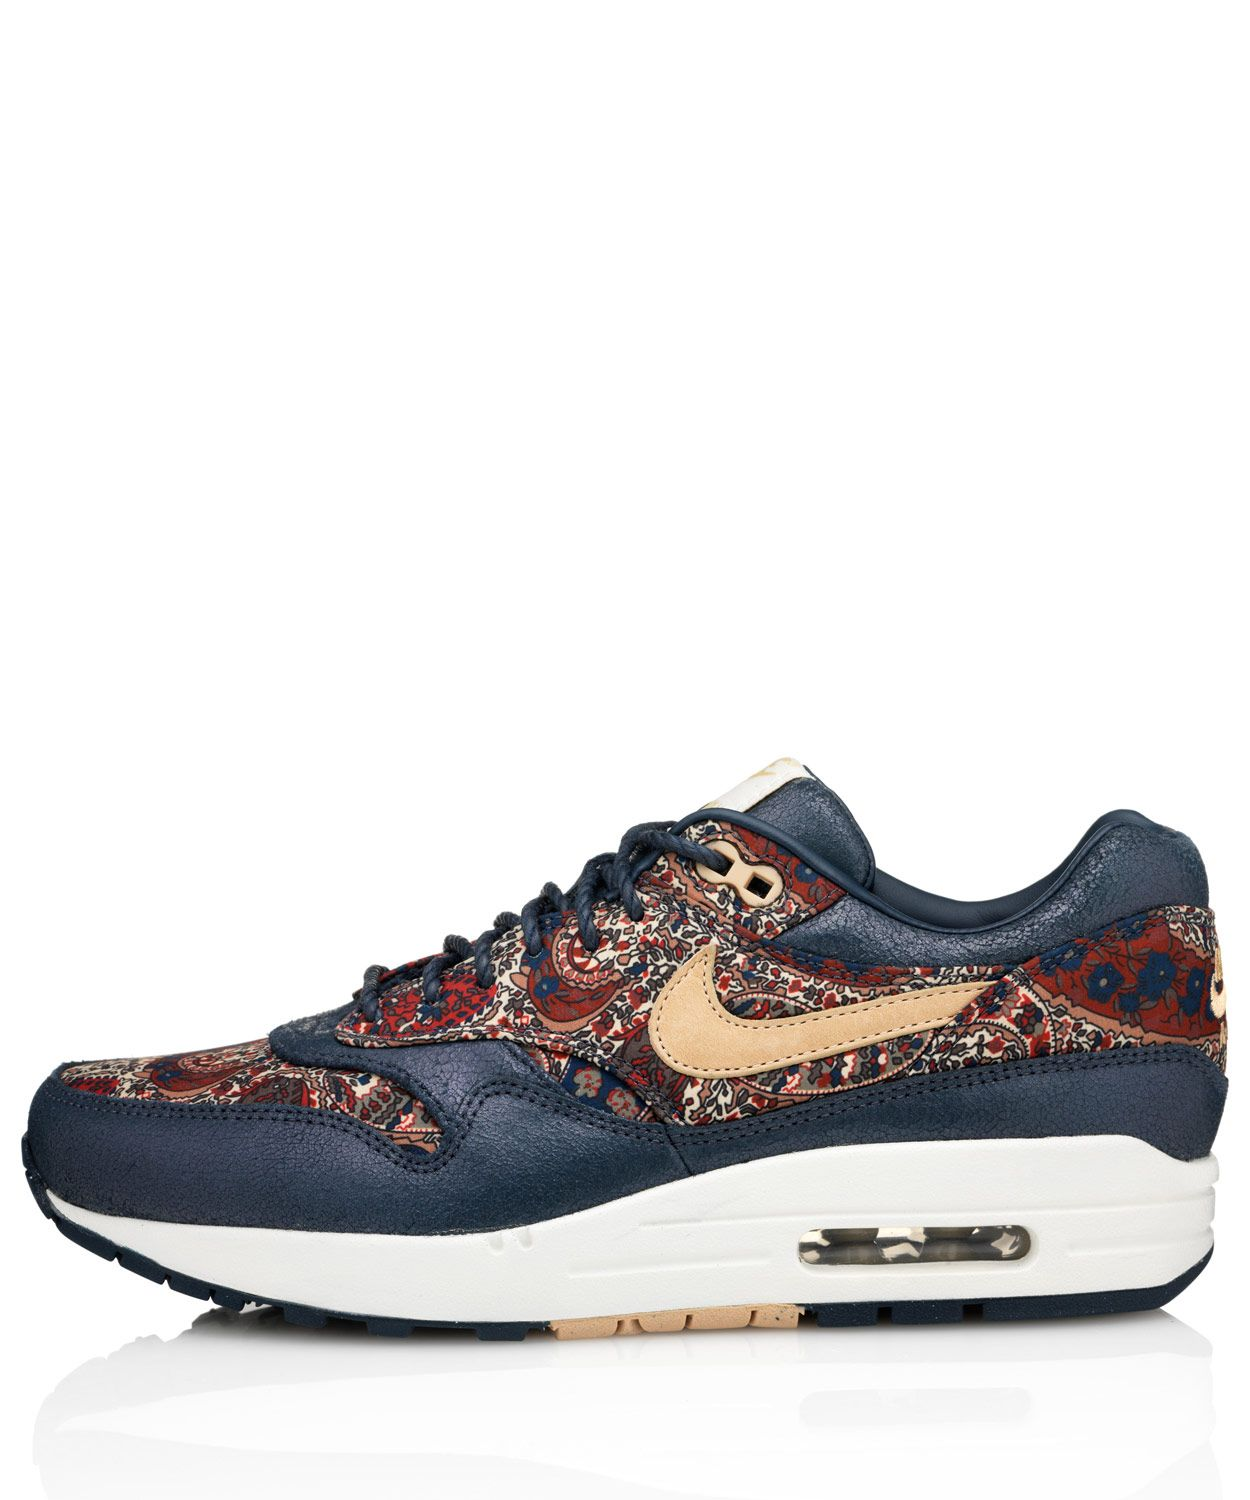 Nike X Liberty Navy Bourton Liberty Print Air Max 1 Trainers